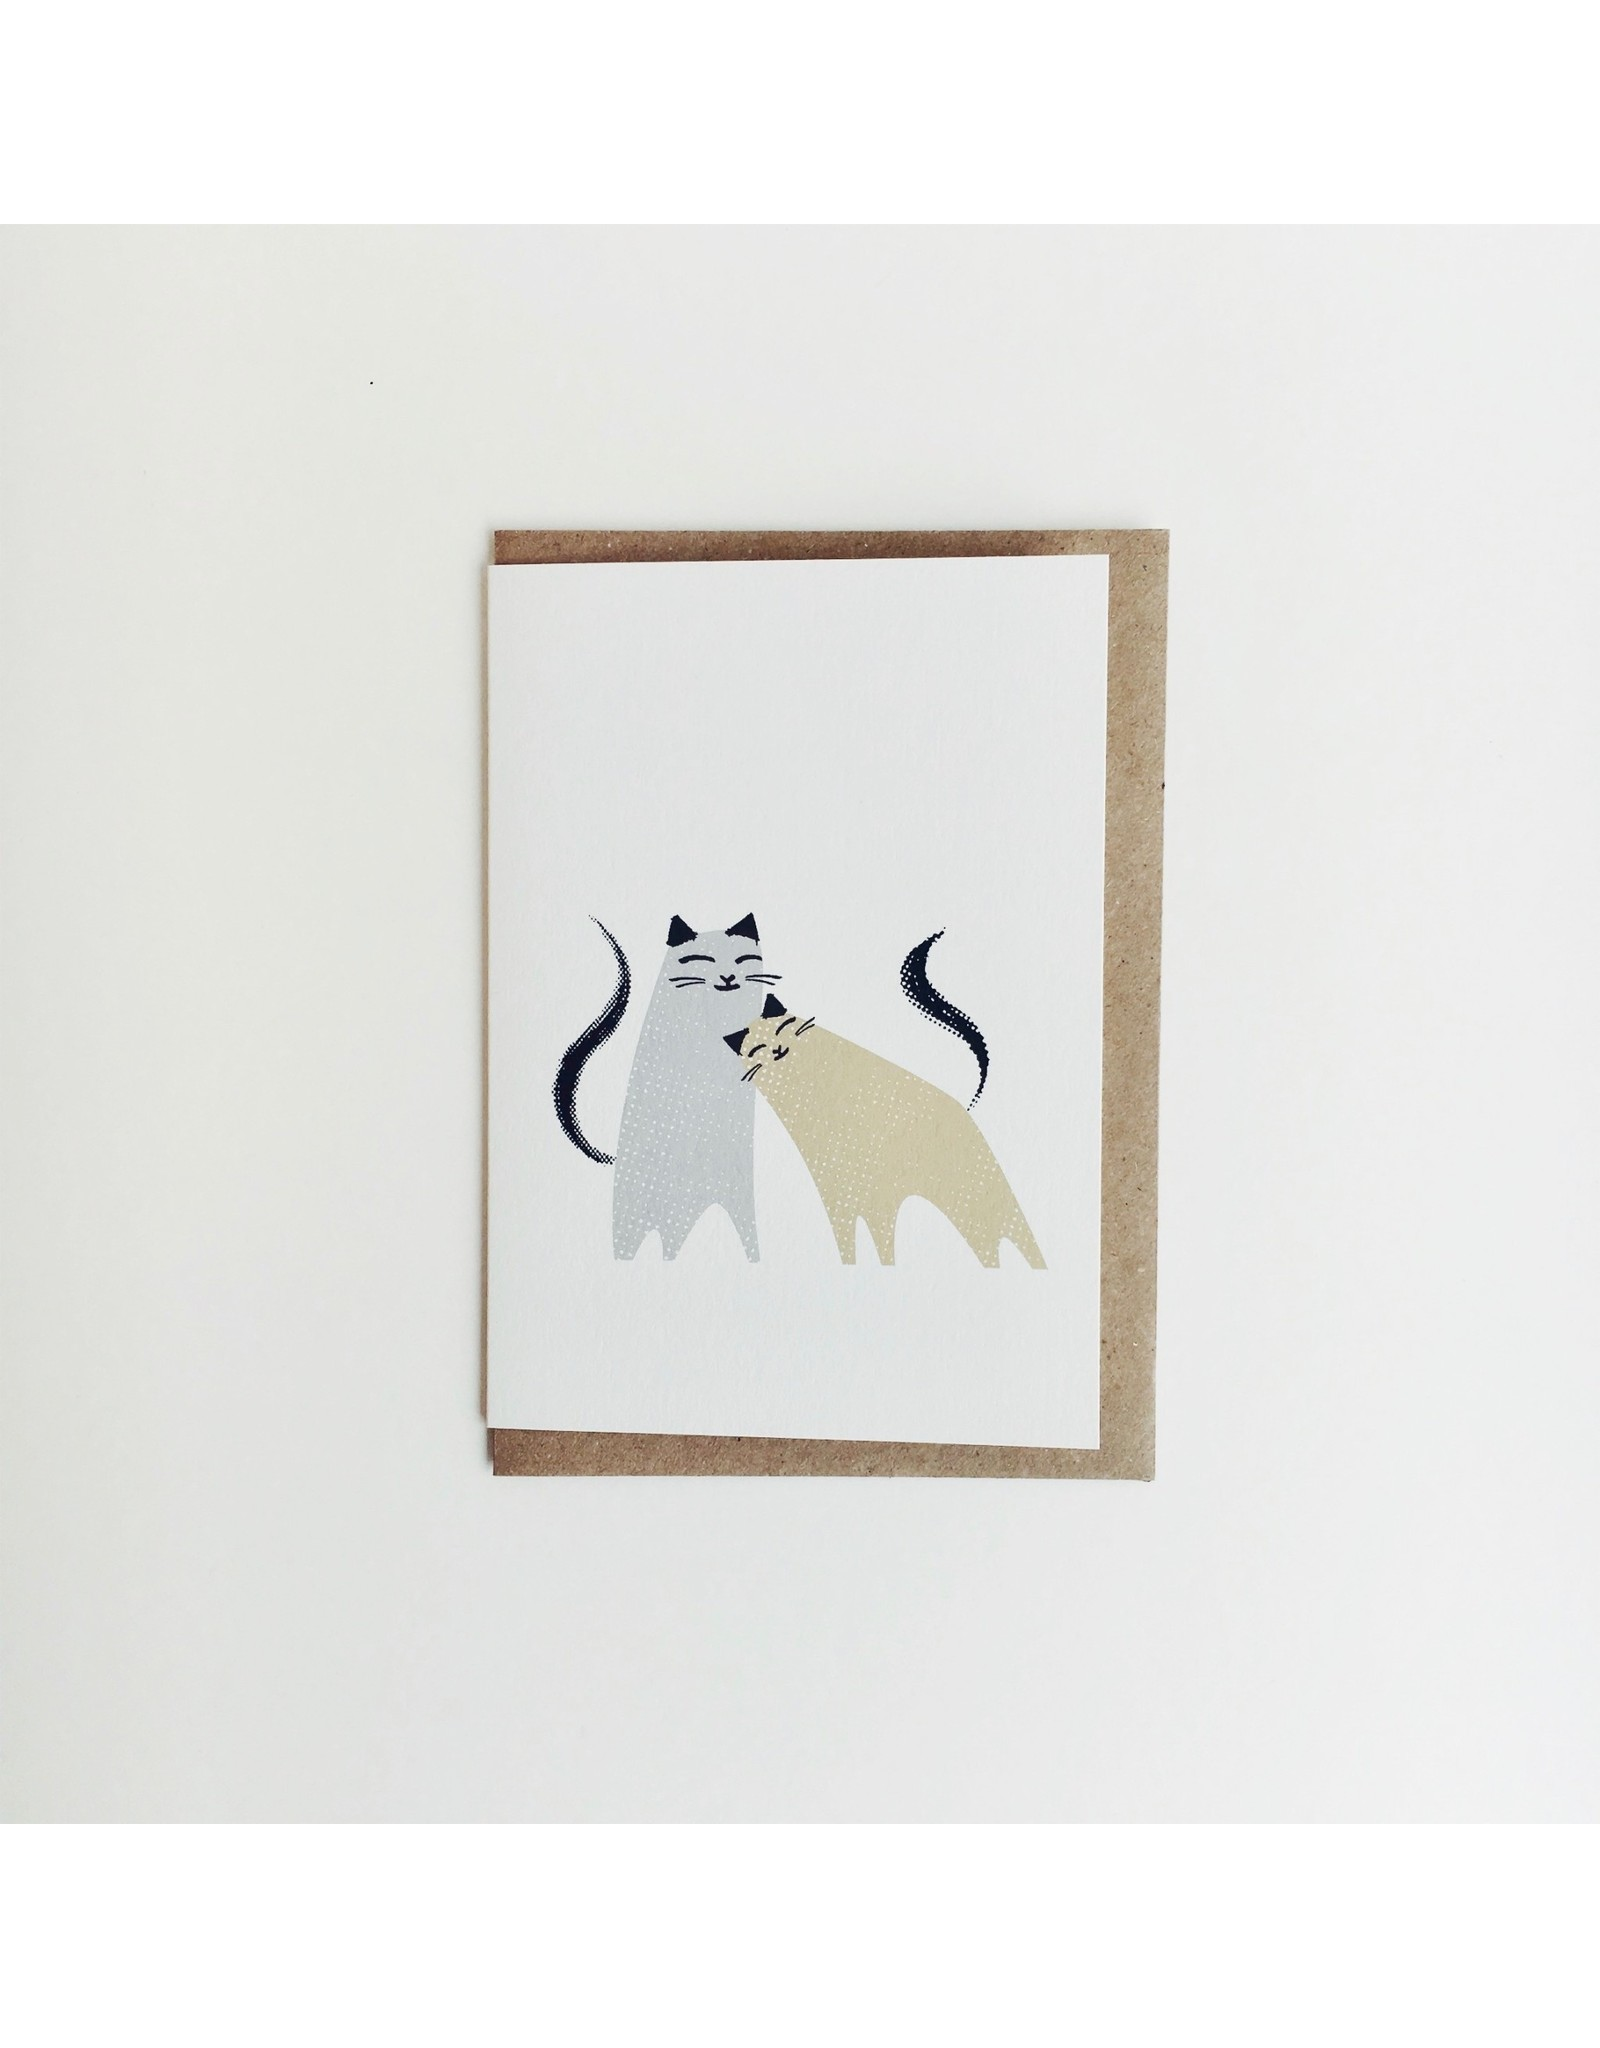 Snuggling Cats Card